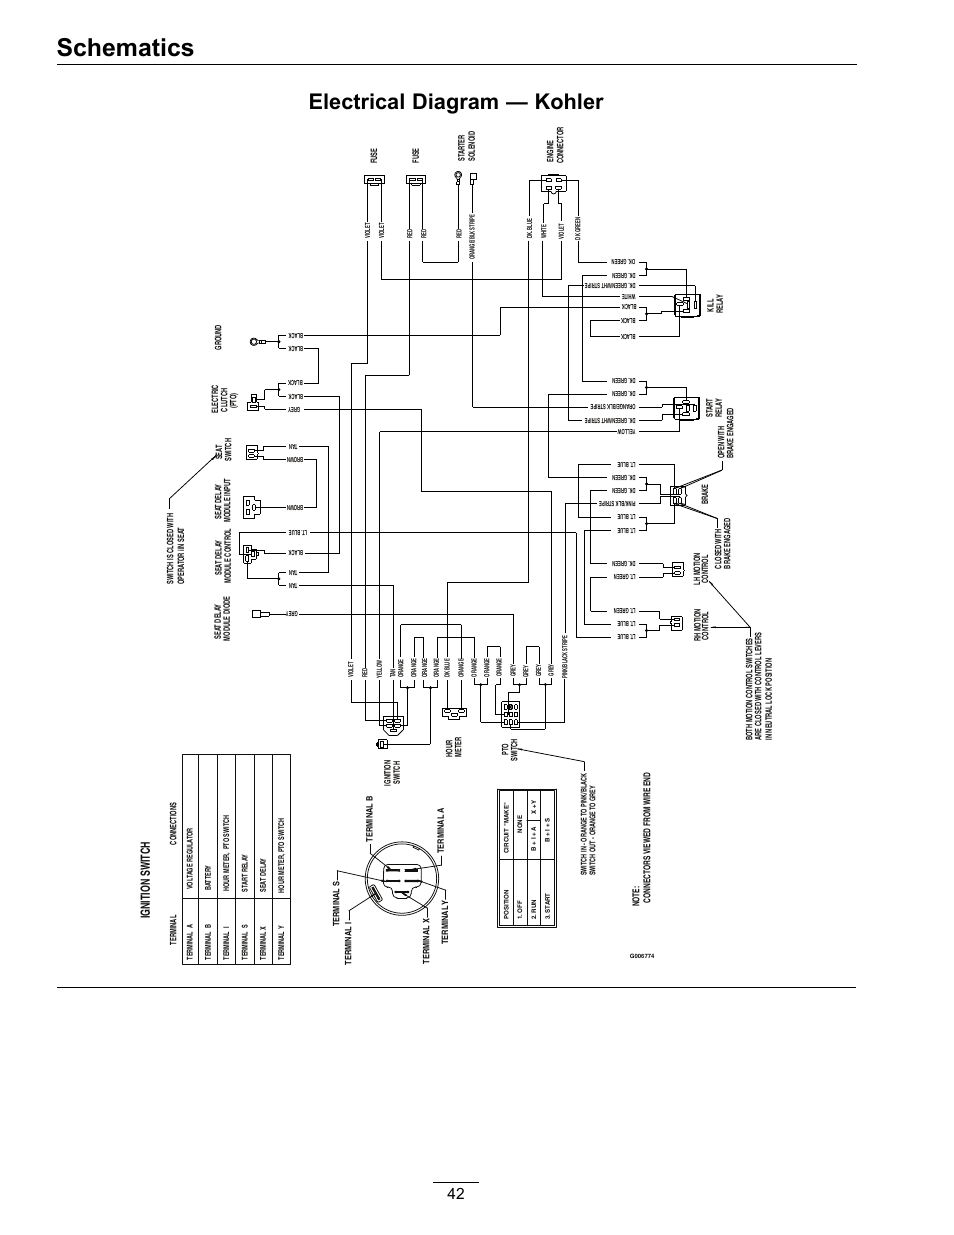 exmark lazer z hp 565 page42 schematics, electrical diagram kohler, ignition switch exmark exmark wiring diagram at honlapkeszites.co